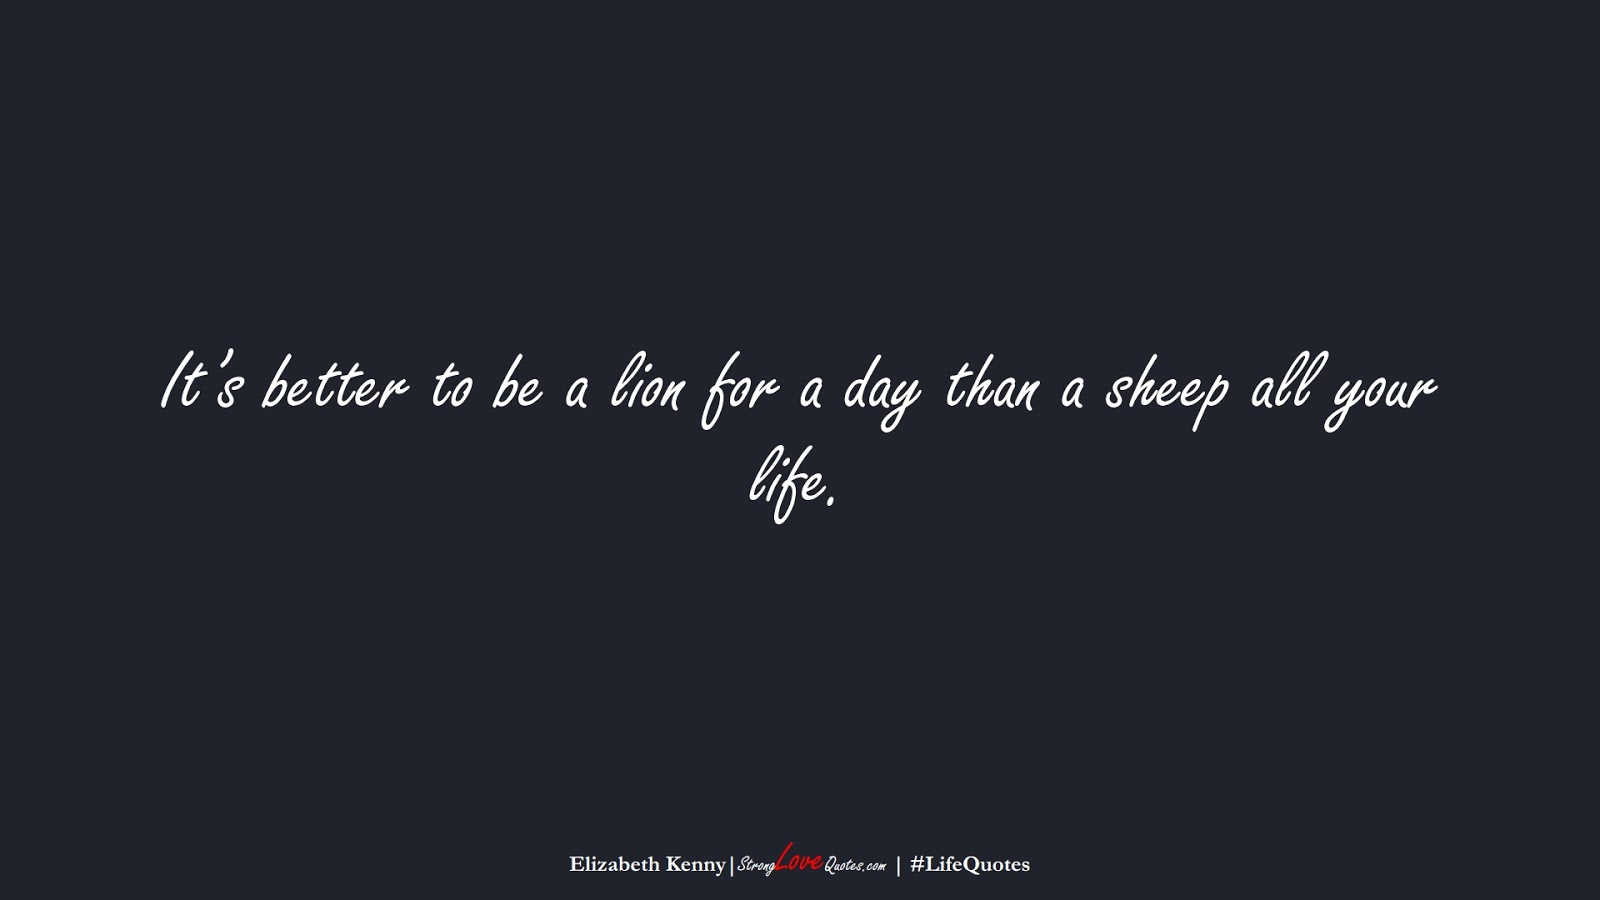 It's better to be a lion for a day than a sheep all your life. (Elizabeth Kenny);  #LifeQuotes